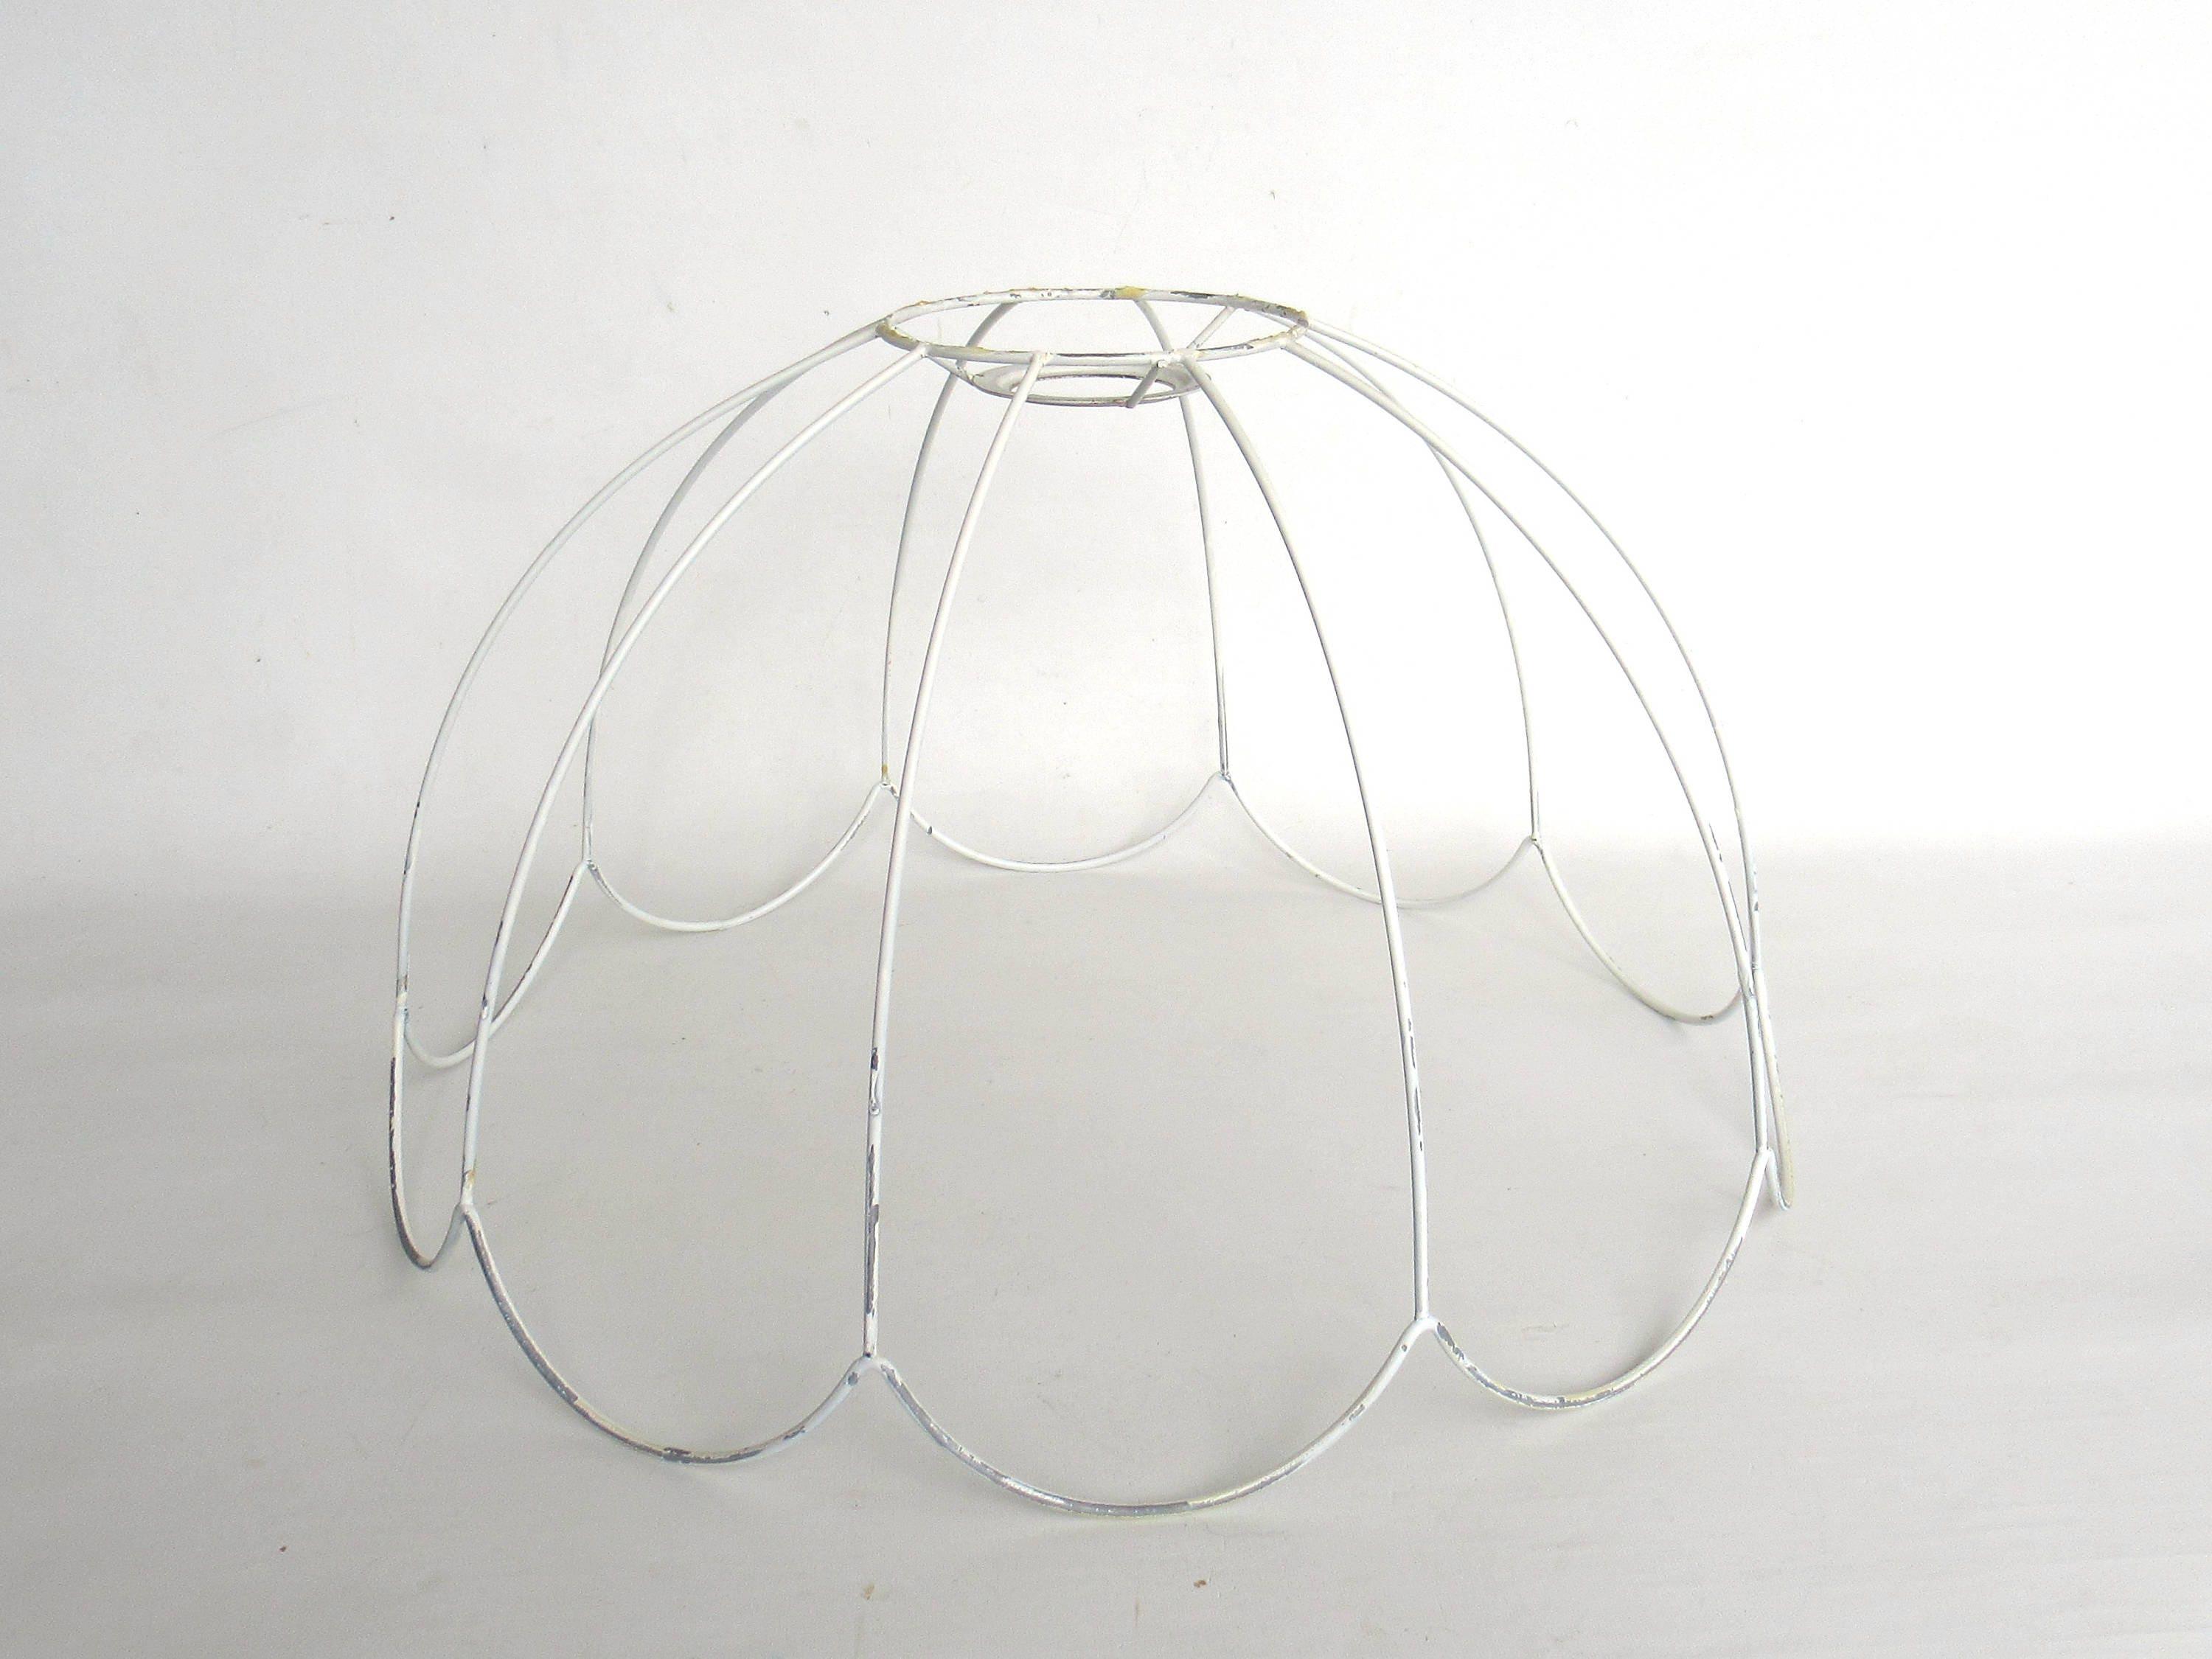 Lampshade frame wire frame authentic vintage lampshade wire frame lampshade frame wire frame authentic vintage lampshade wire frame lampshade frame pendant 6a8gfak31 greentooth Image collections